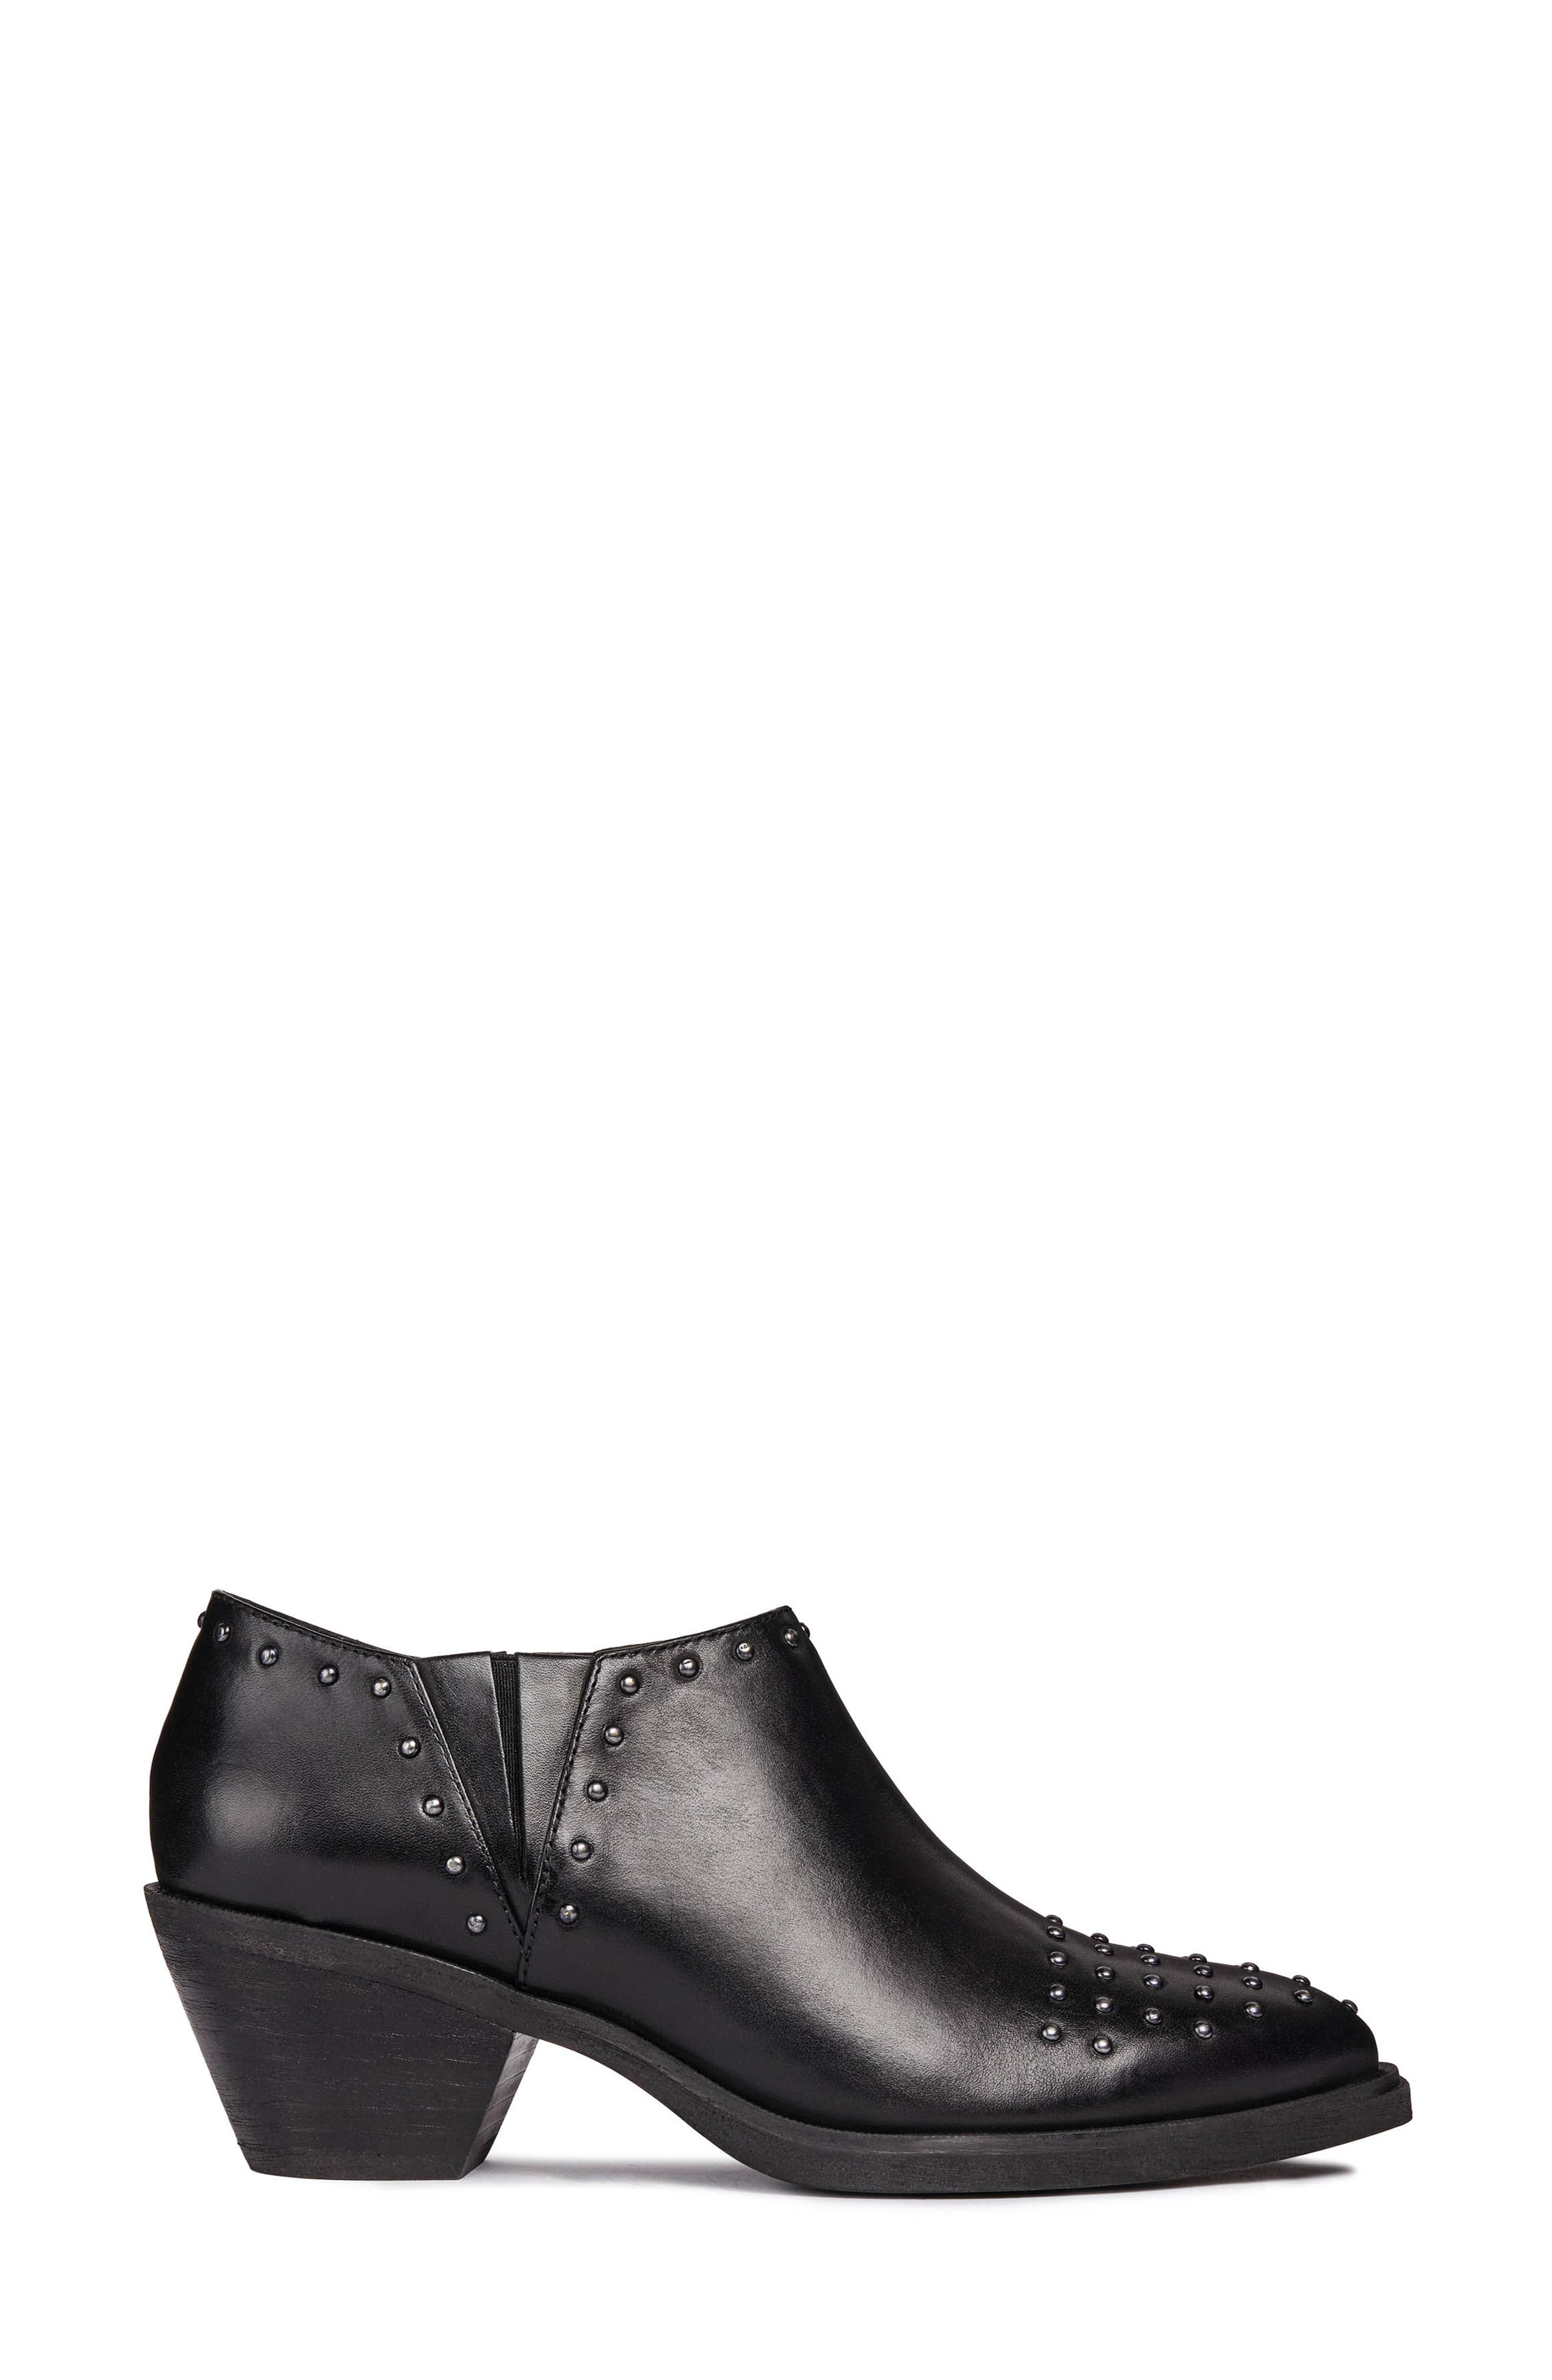 Lovai Ankle Boot,                             Alternate thumbnail 3, color,                             BLACK LEATHER